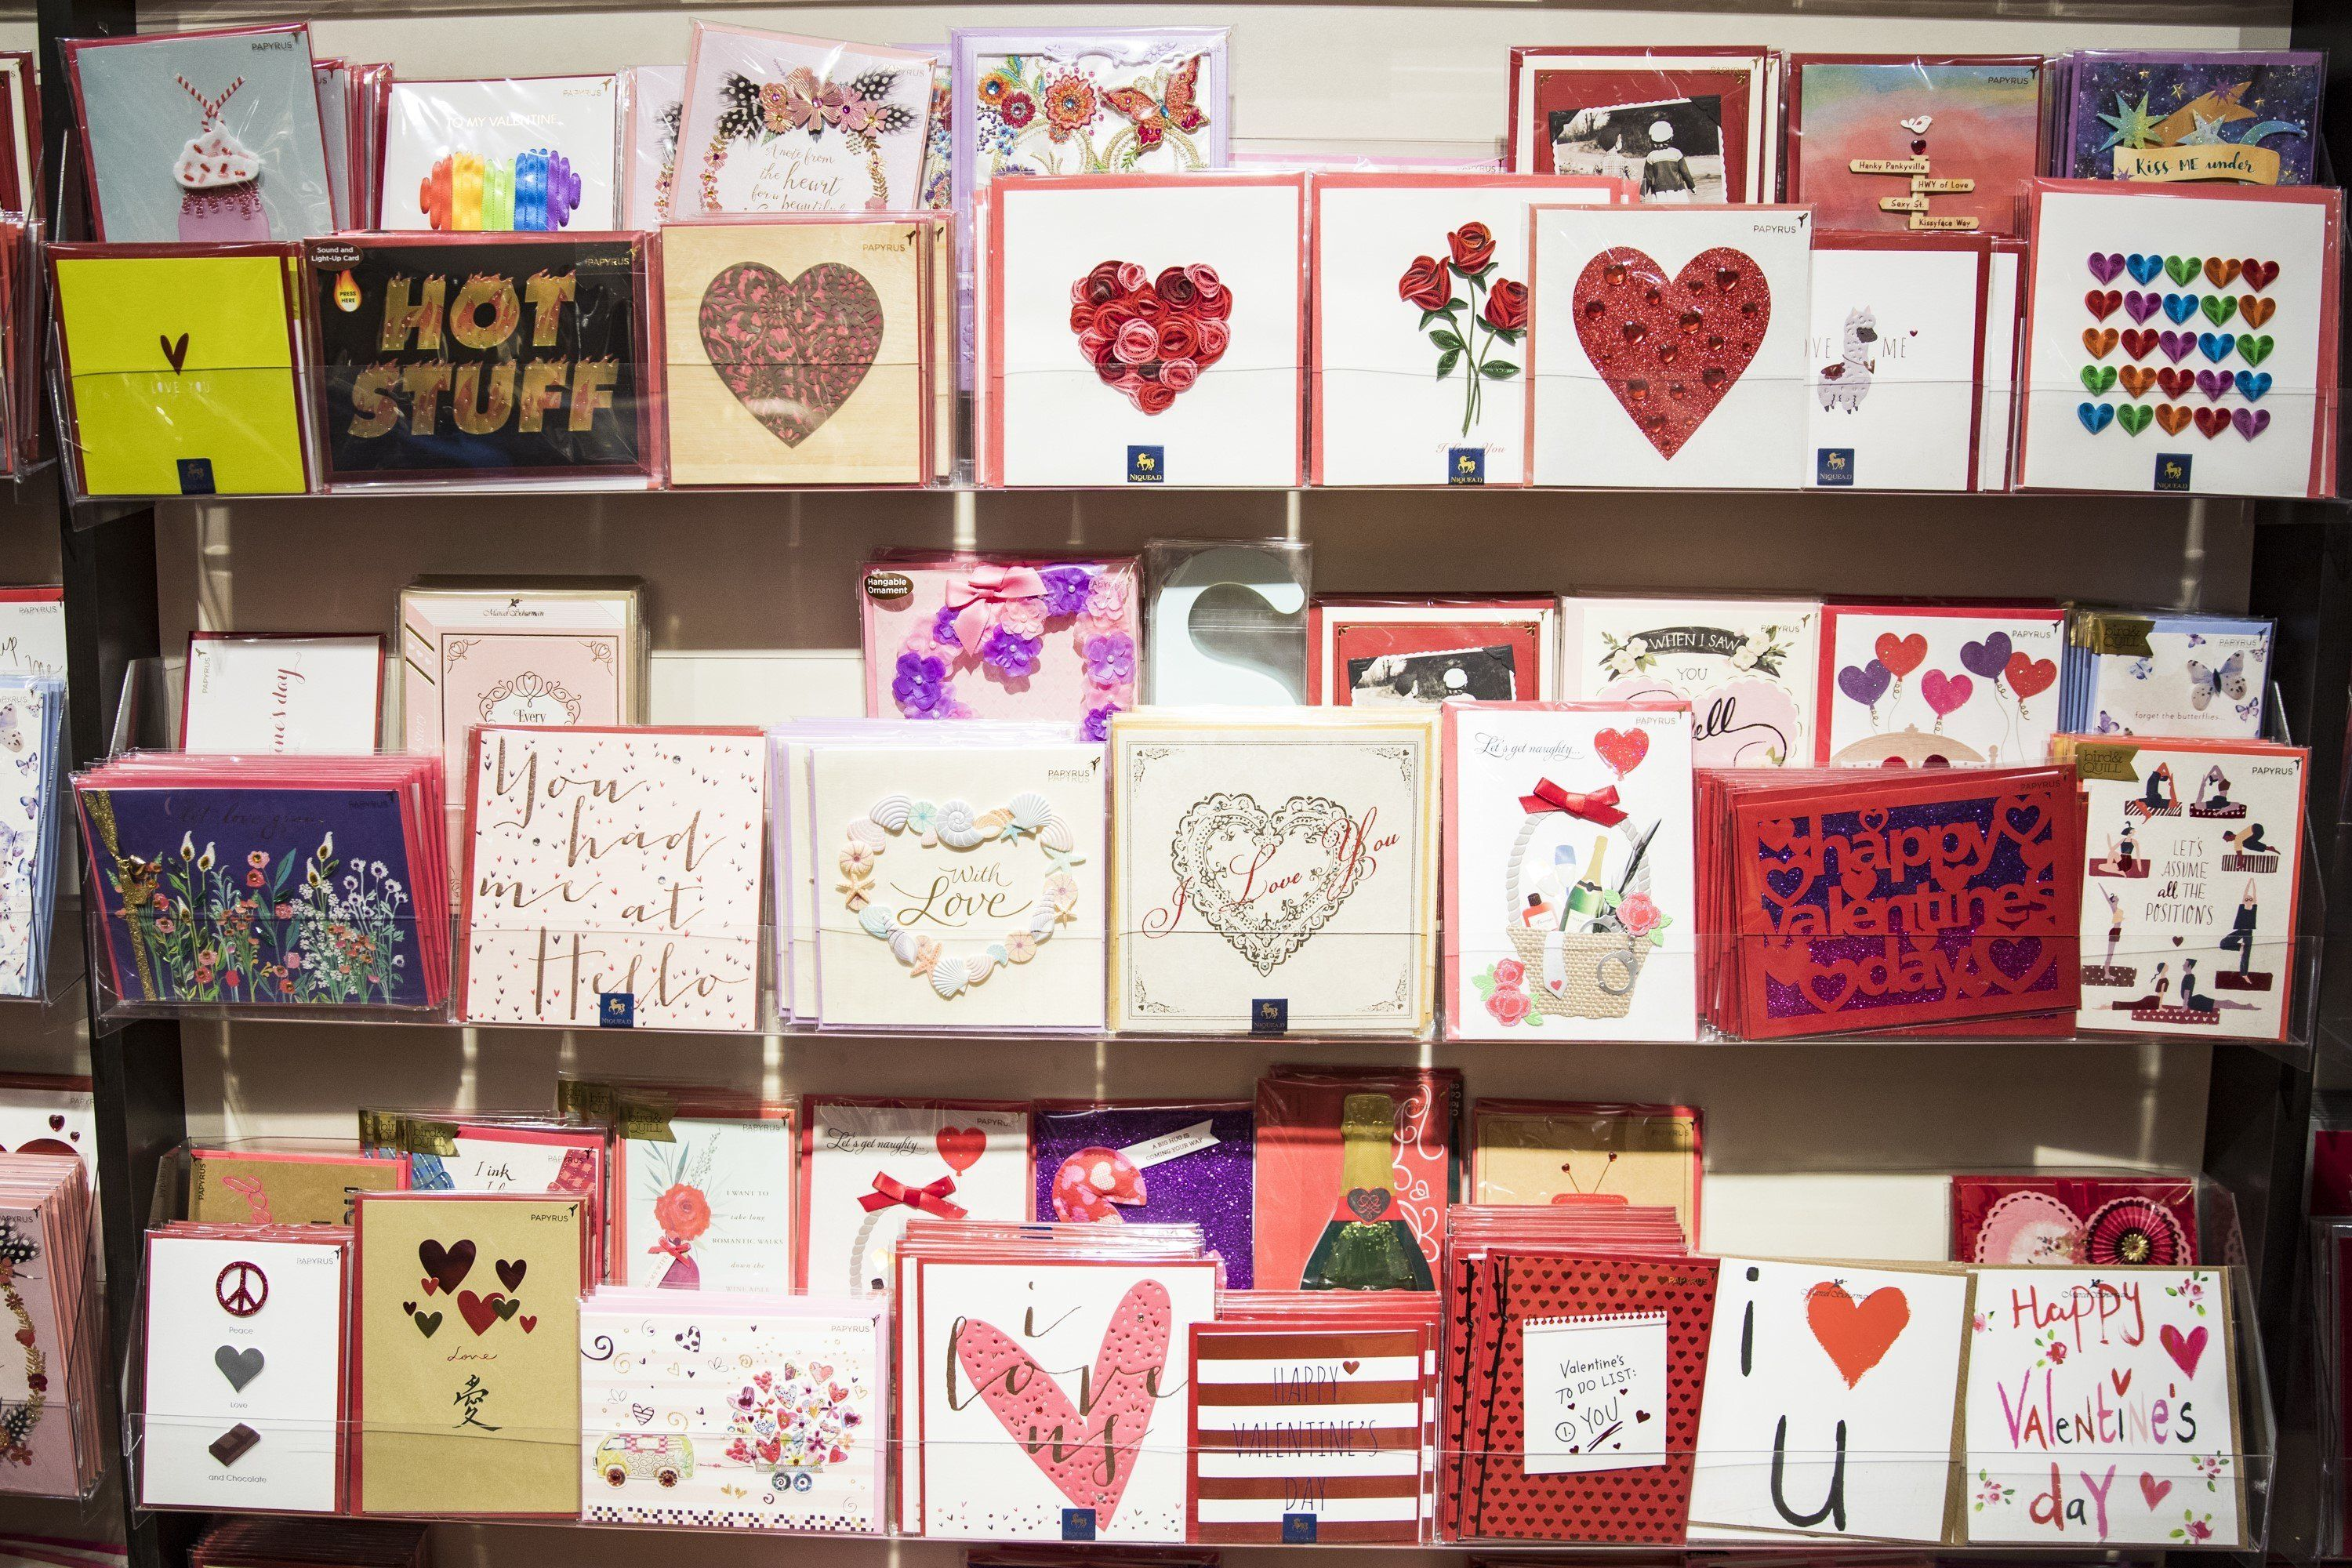 WASHINGTON, USA - FEBRUARY 13: Valentines Day cards are on display in a store in Union Station the day before Valentines Day in Washington, USA on February 13, 2018. (Photo by Samuel Corum/Anadolu Agency/Getty Images)